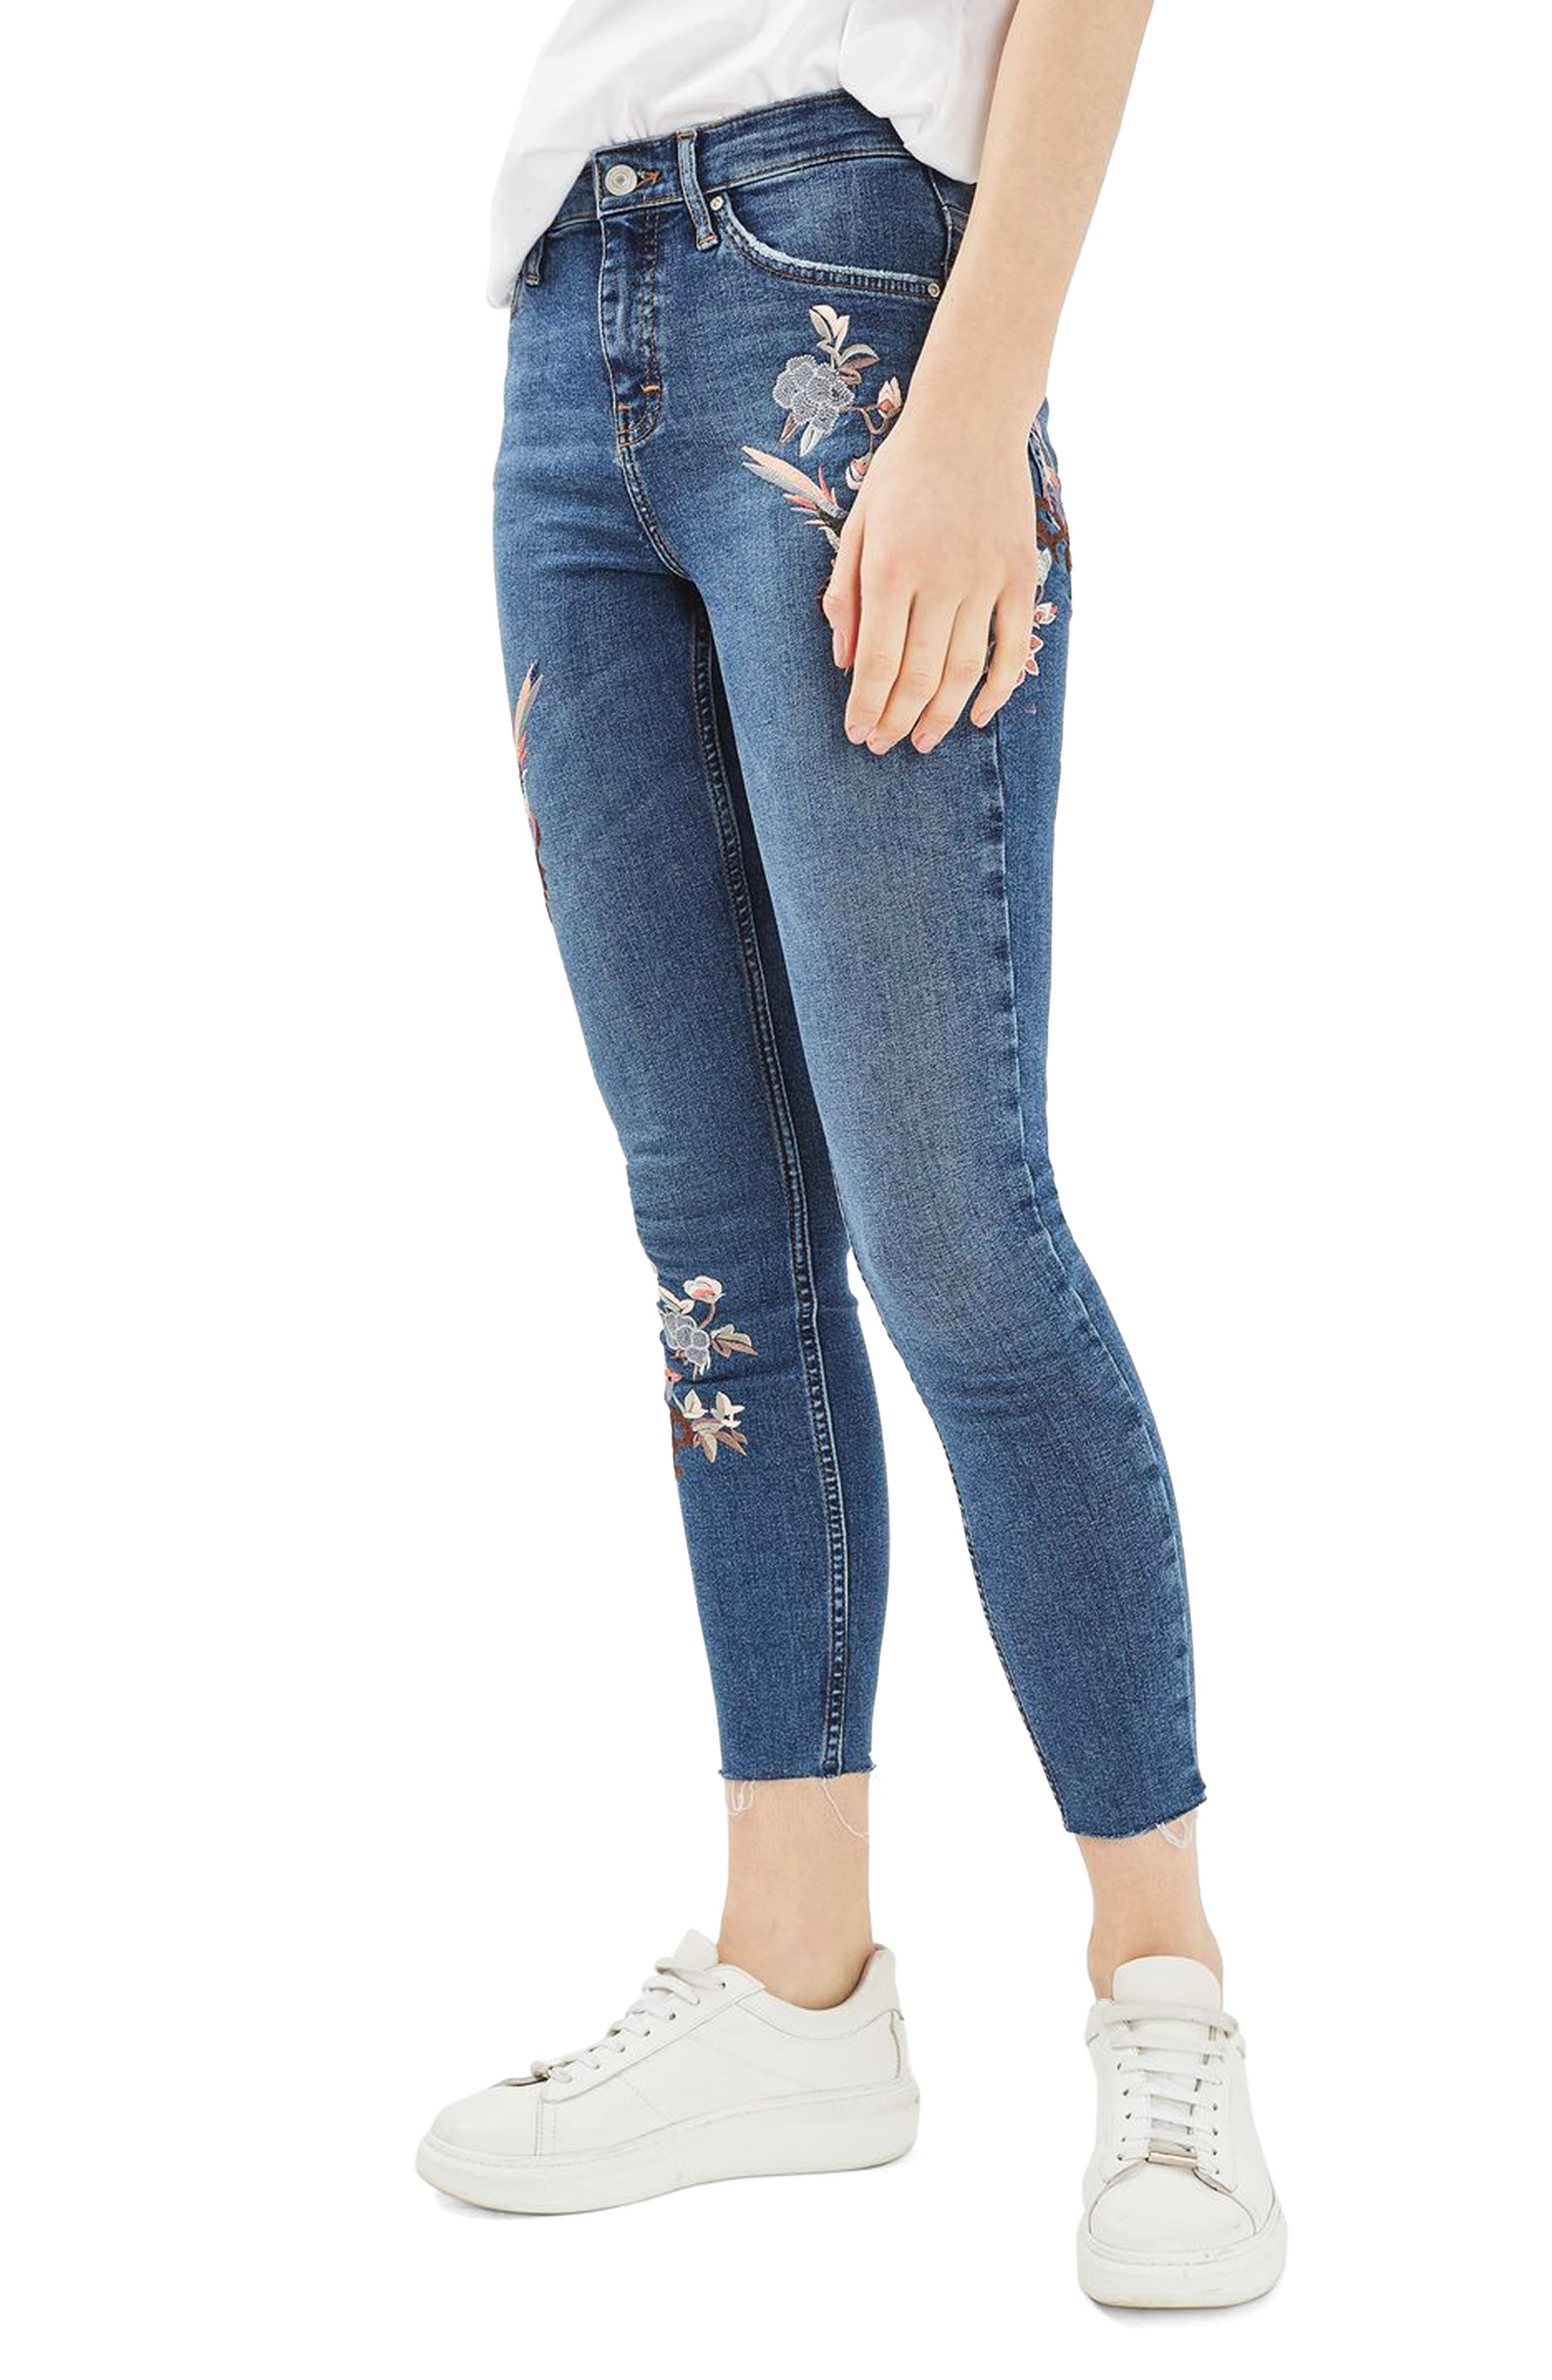 Moto Jamie Embroidered Skinny Jeans,                         Main,                         color, 400